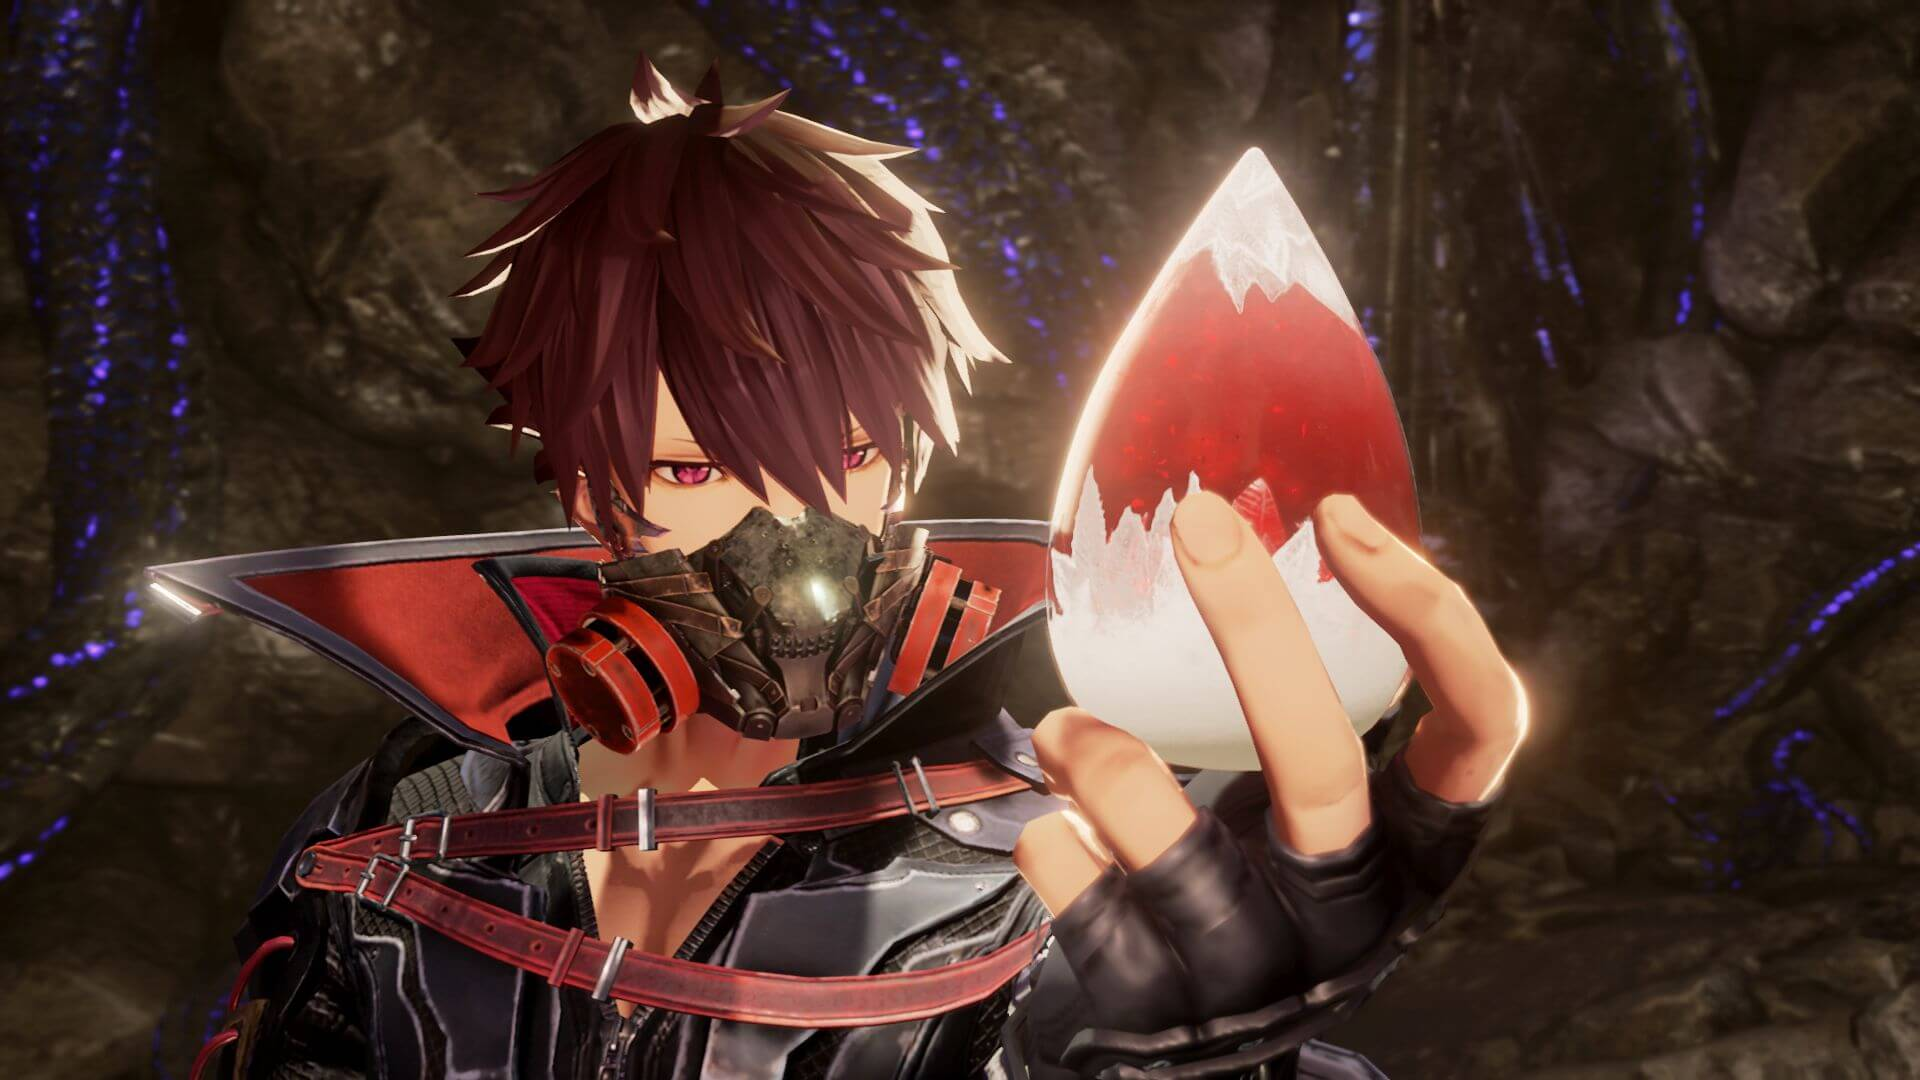 Bandai Namco Is Giving Out Free Copies Of Code Vein If You Donate Blood